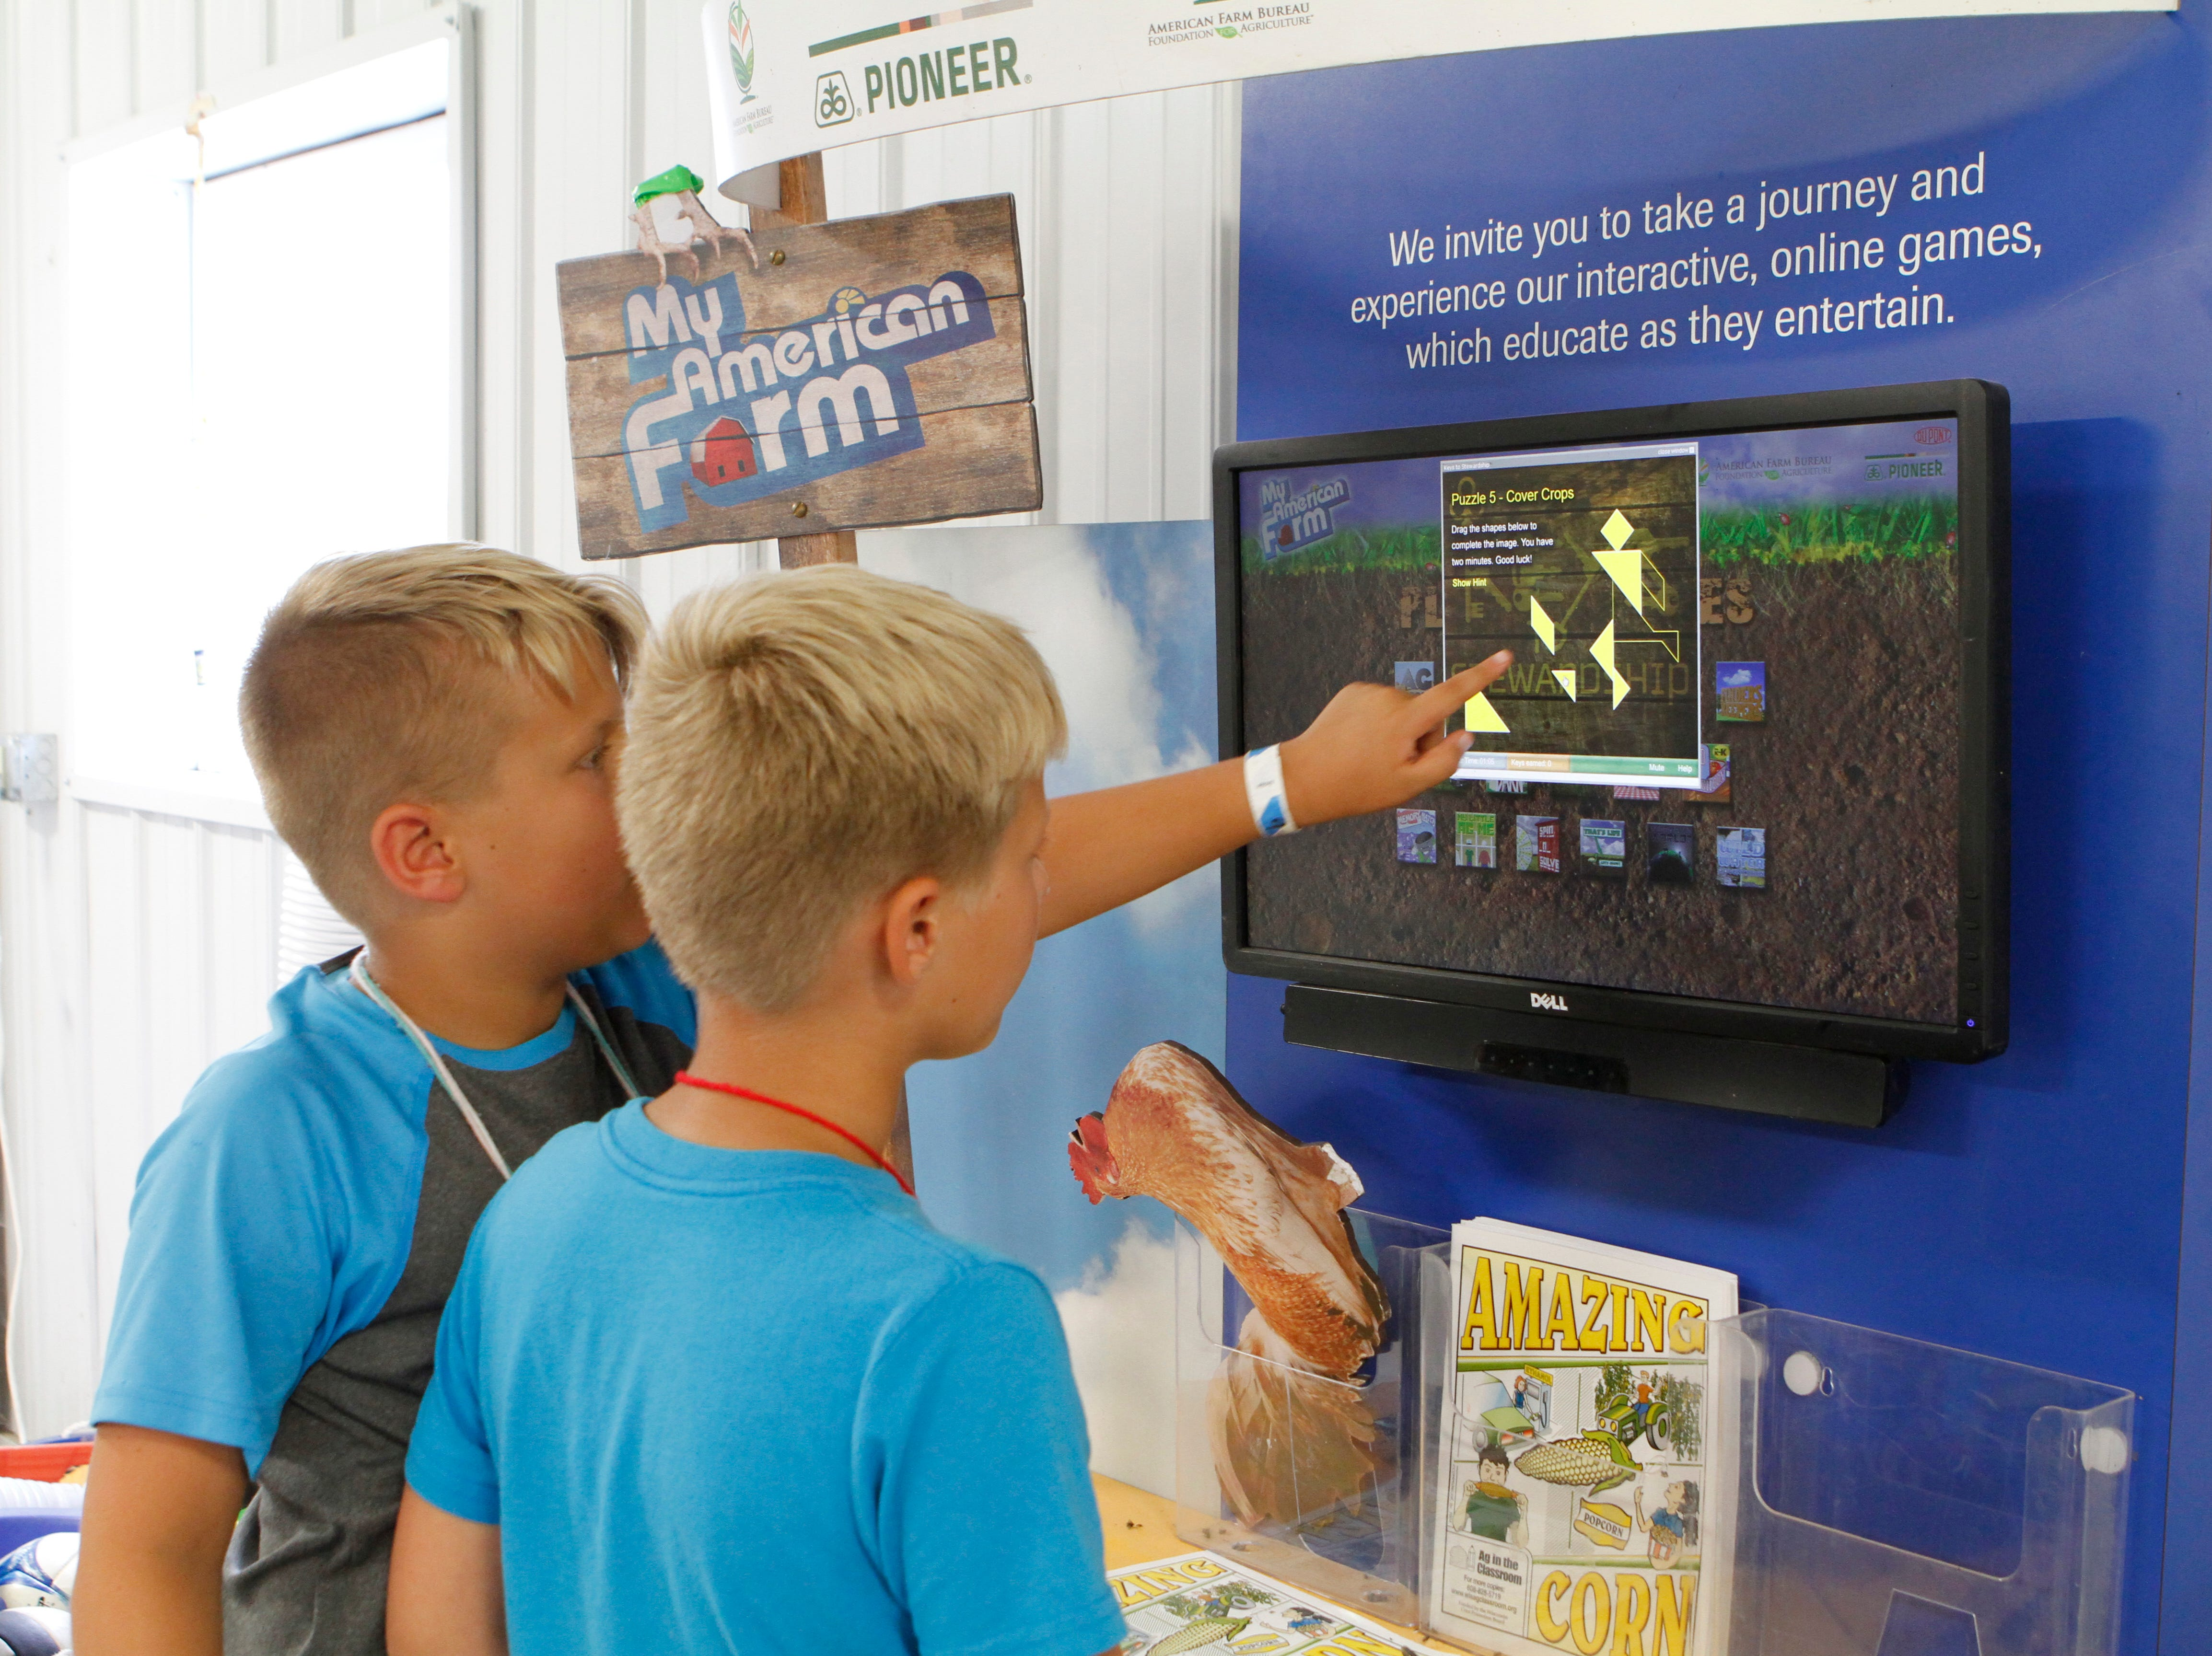 Tate (left) and Easton Nitschke, 9, play an interactive game on cover crops during a farm camp on Aug. 9 at Roden's Barnyard Adventures, West Bend.